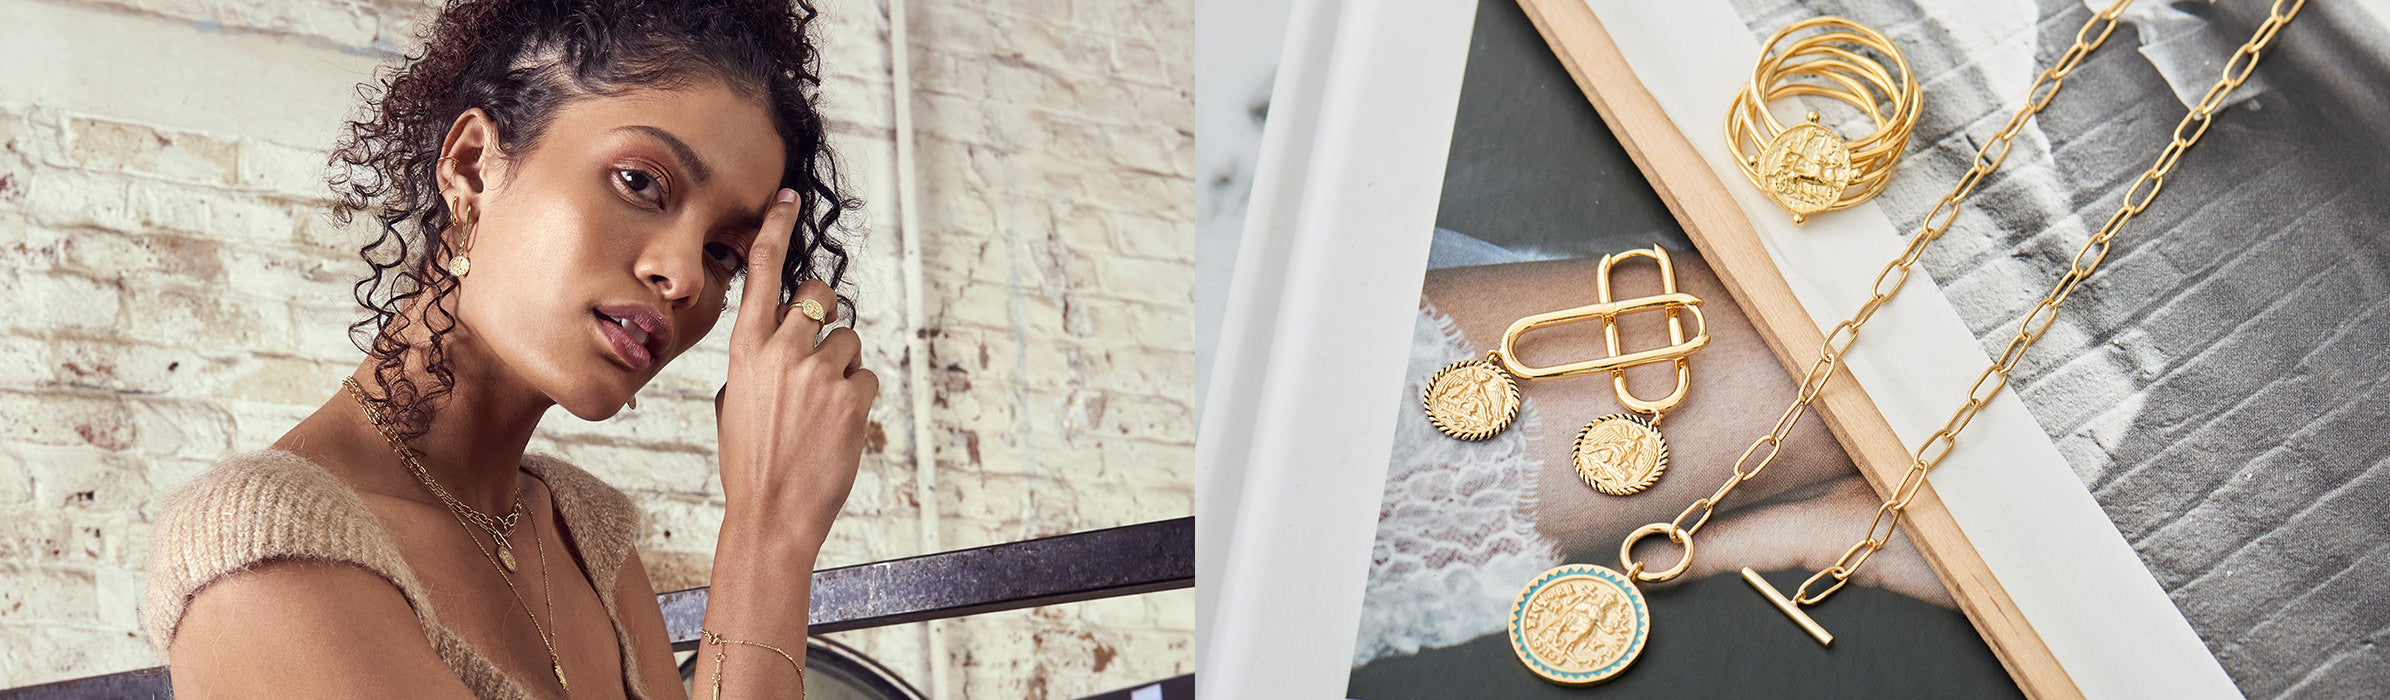 Gold Digger Jewellery by Ania Haie